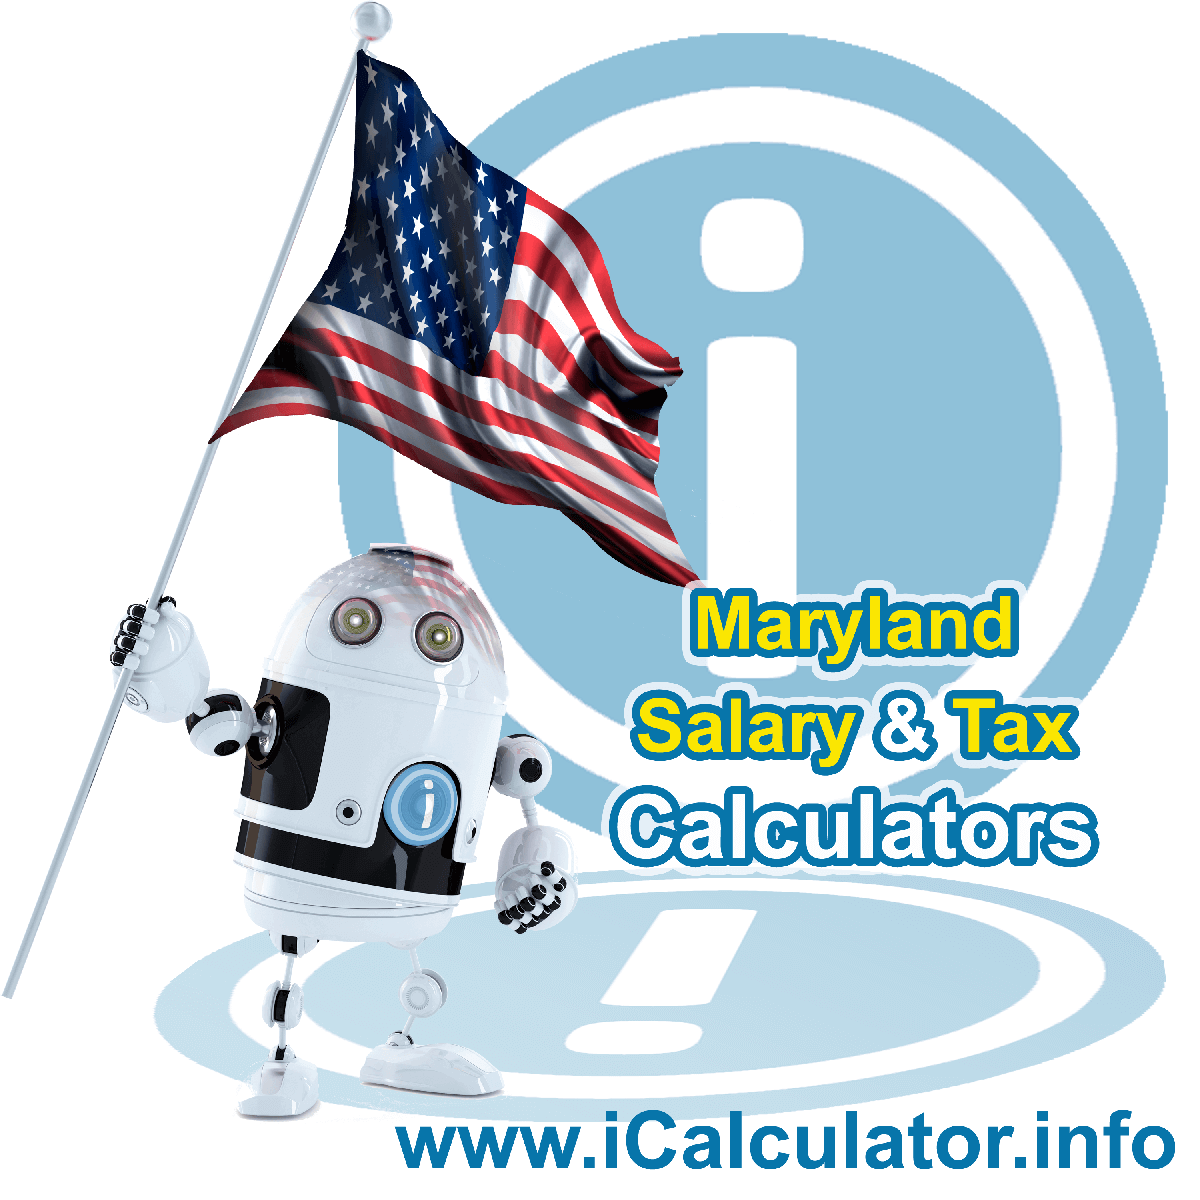 Maryland Salary Calculator 2021 | iCalculator™ | The Maryland Salary Calculator allows you to quickly calculate your salary after tax including Maryland State Tax, Federal State Tax, Medicare Deductions, Social Security, Capital Gains and other income tax and salary deductions complete with supporting Maryland state tax tables